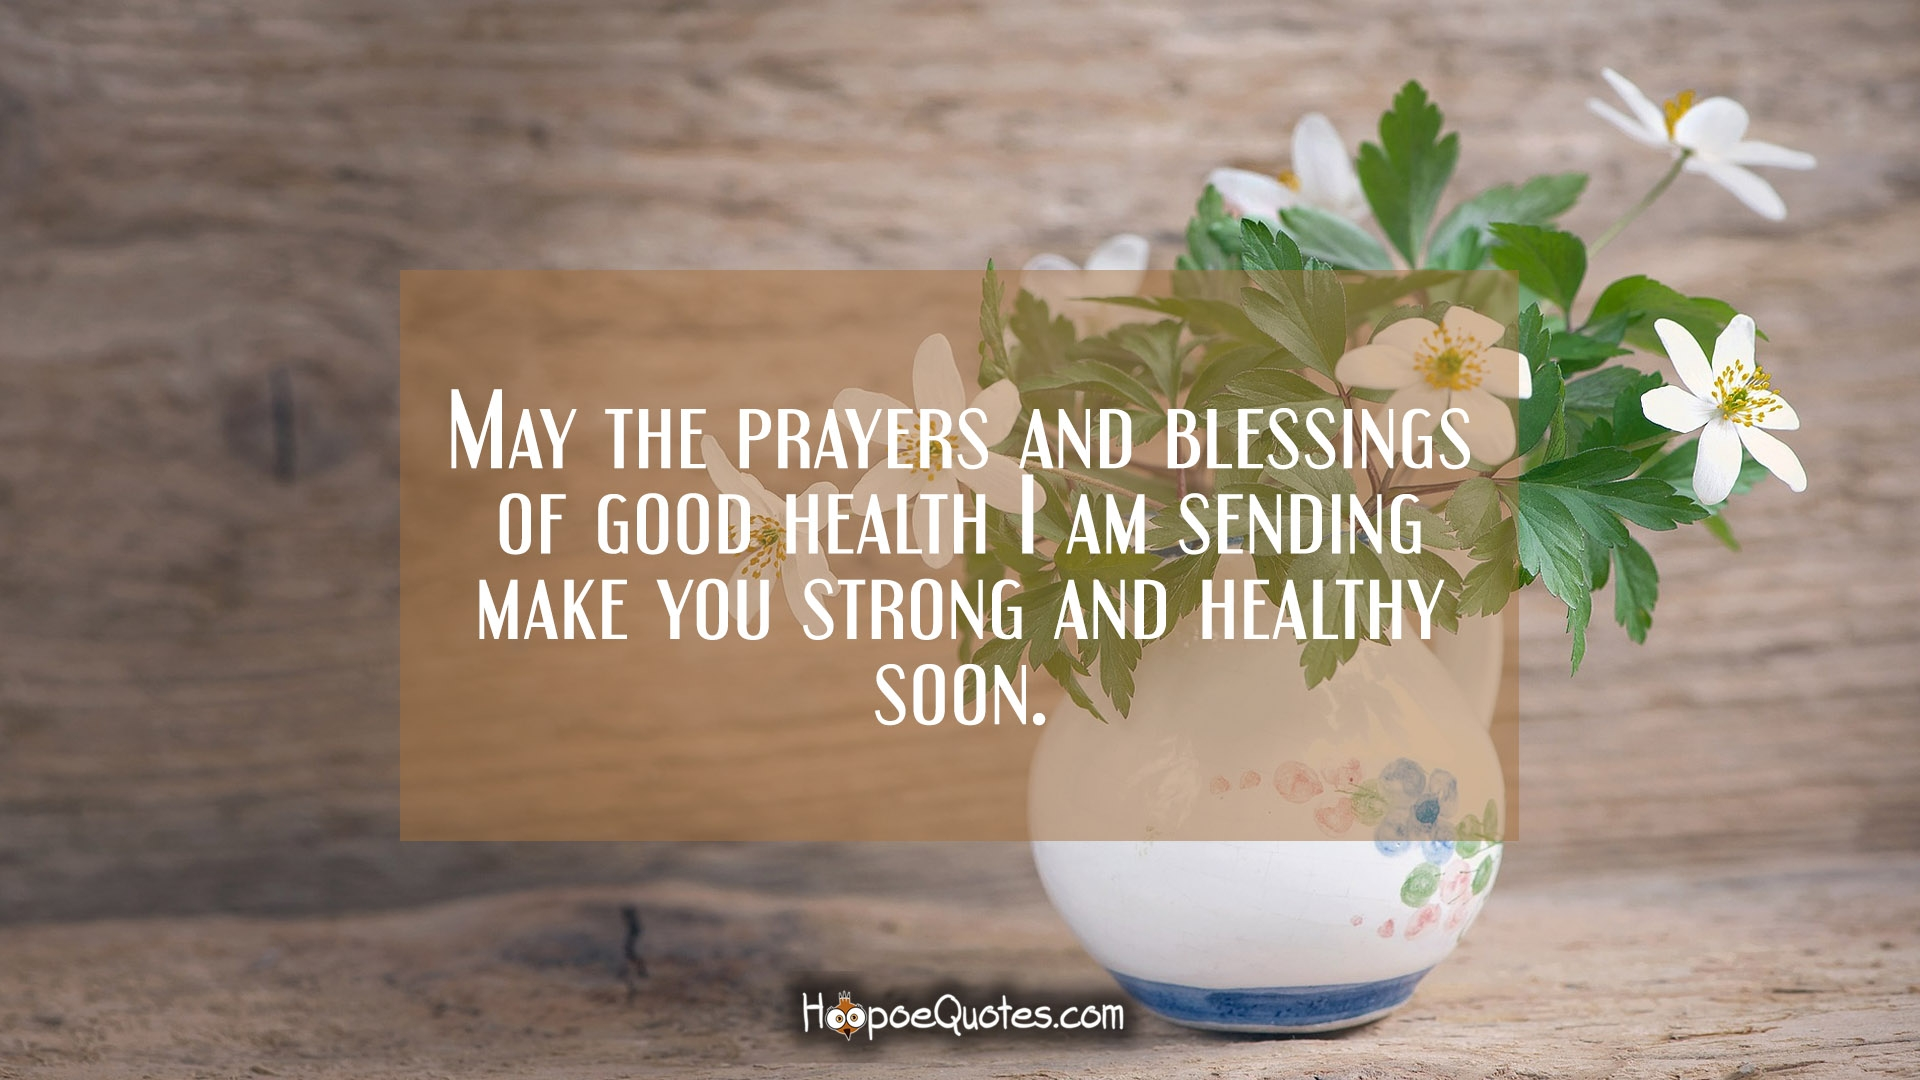 May the prayers and blessings of good health I am sending